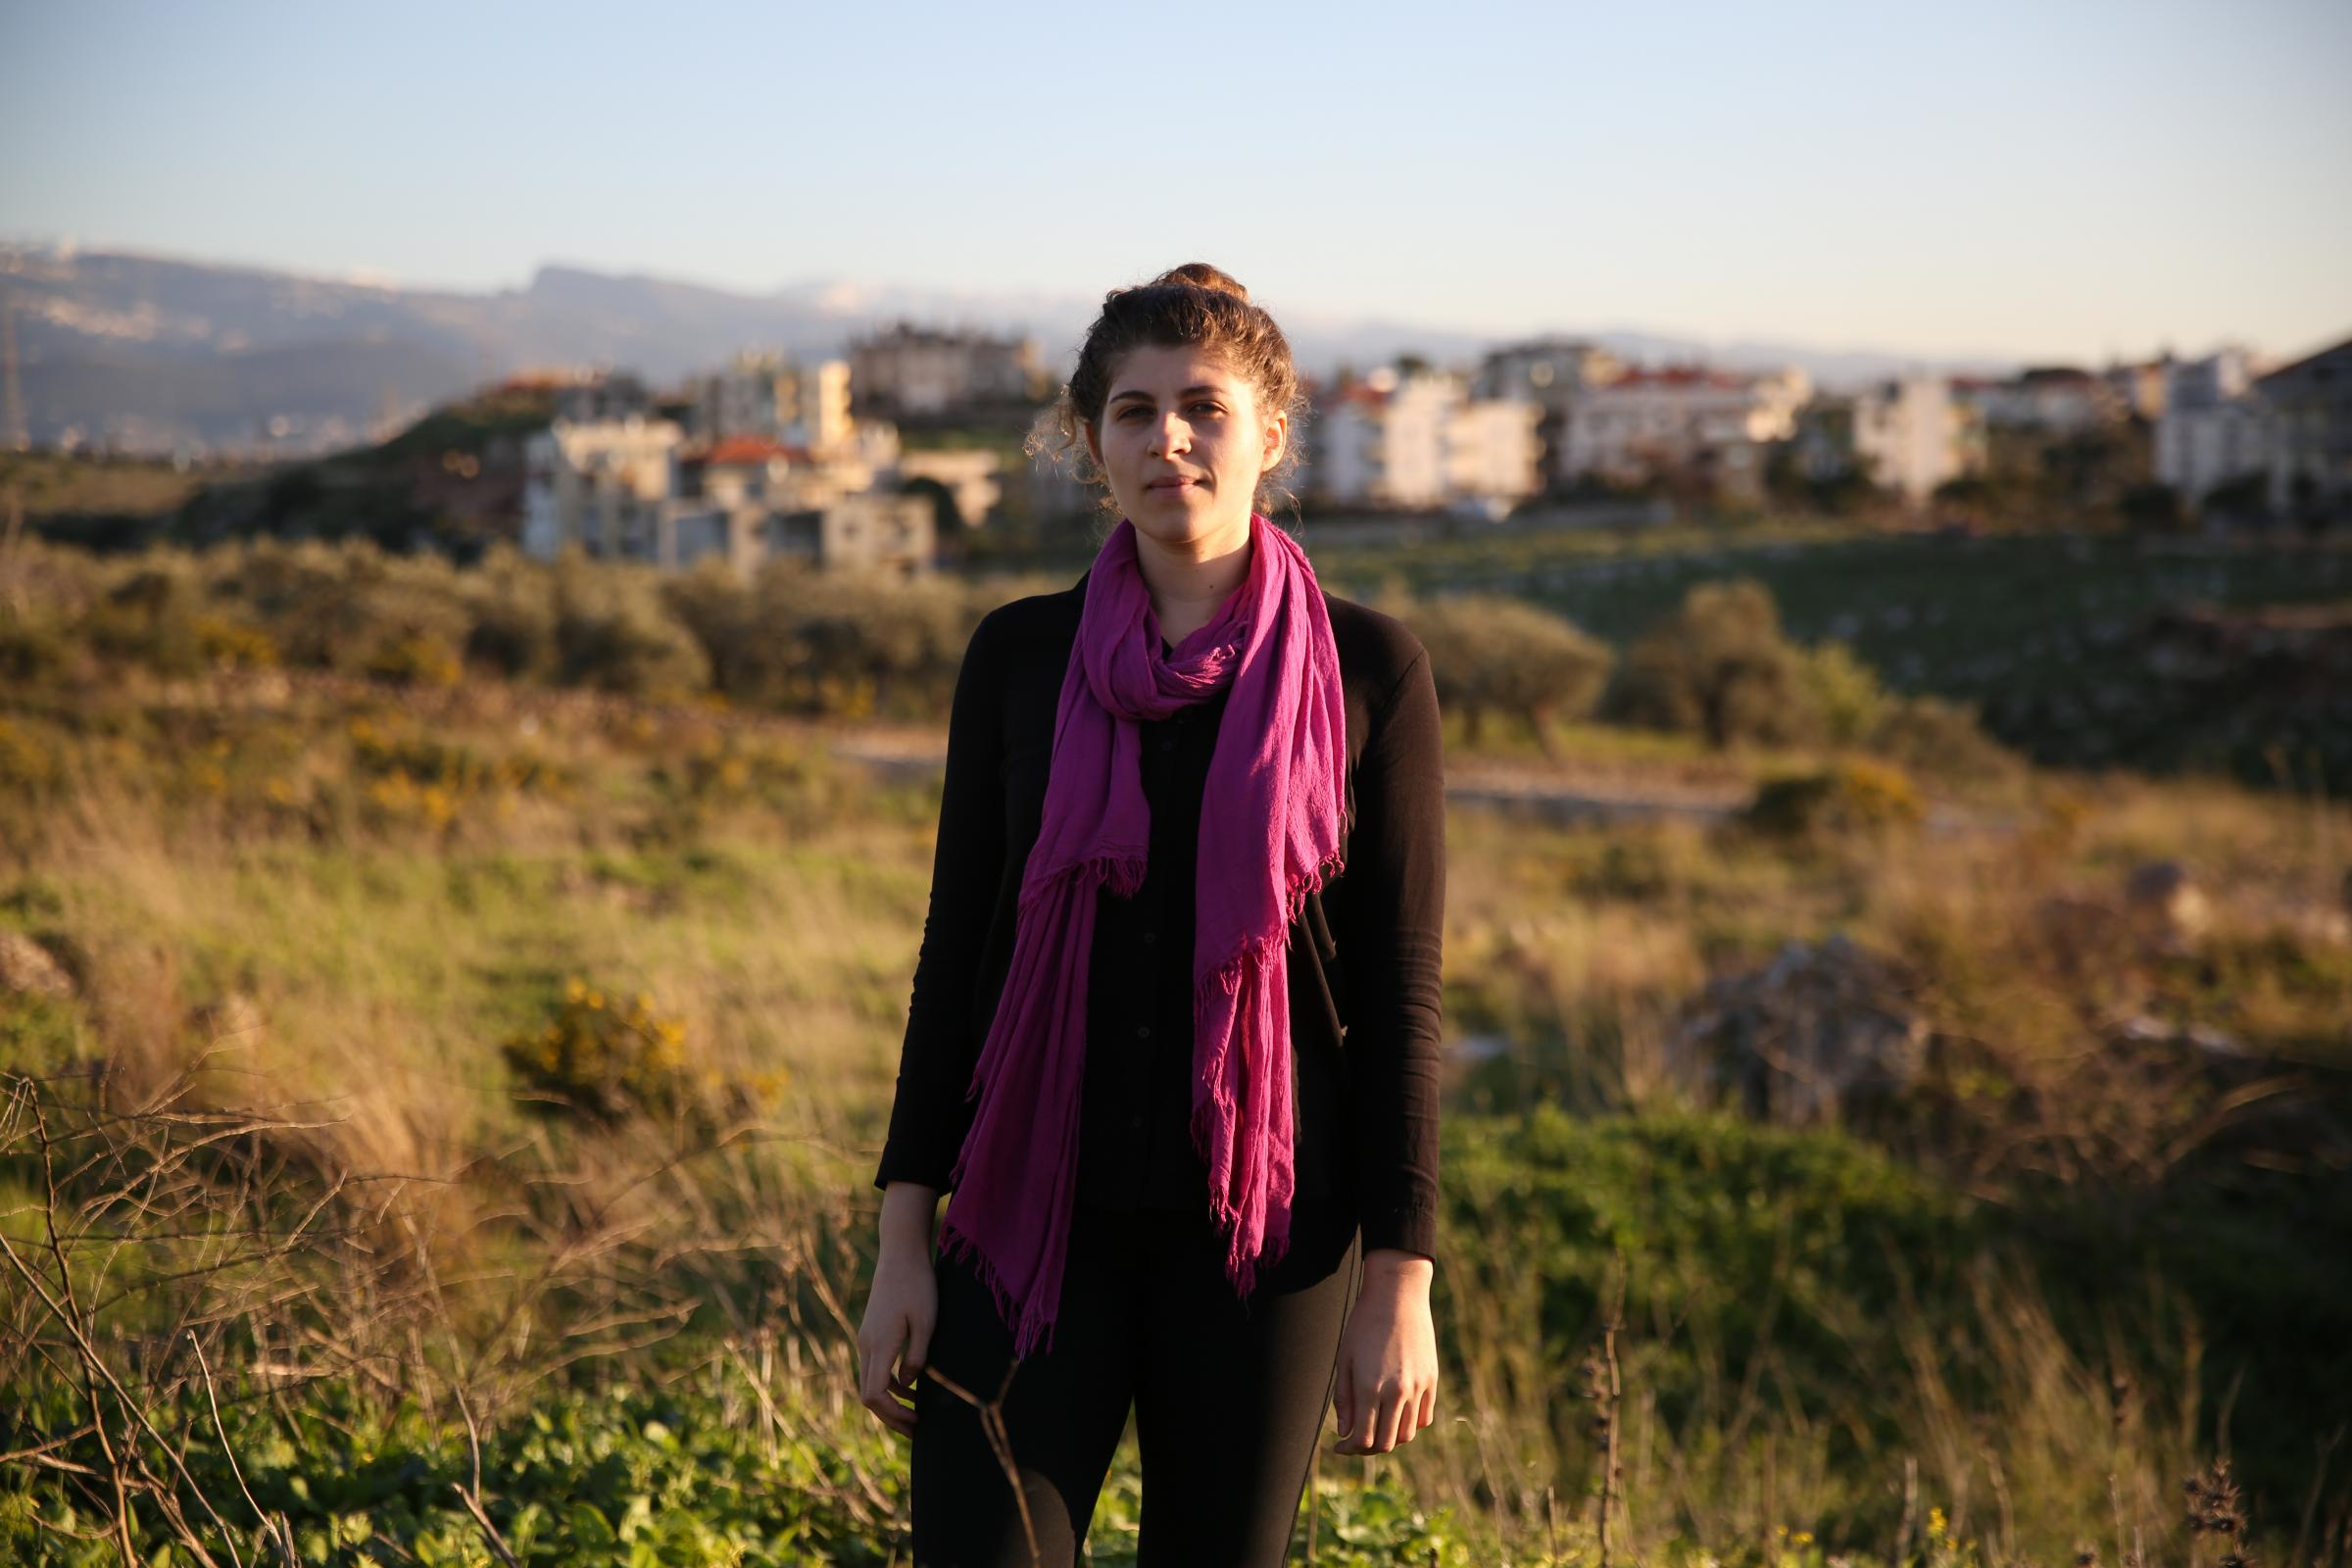 CAFOD charity worker from Penarth helps Syrian refugees in Lebanon